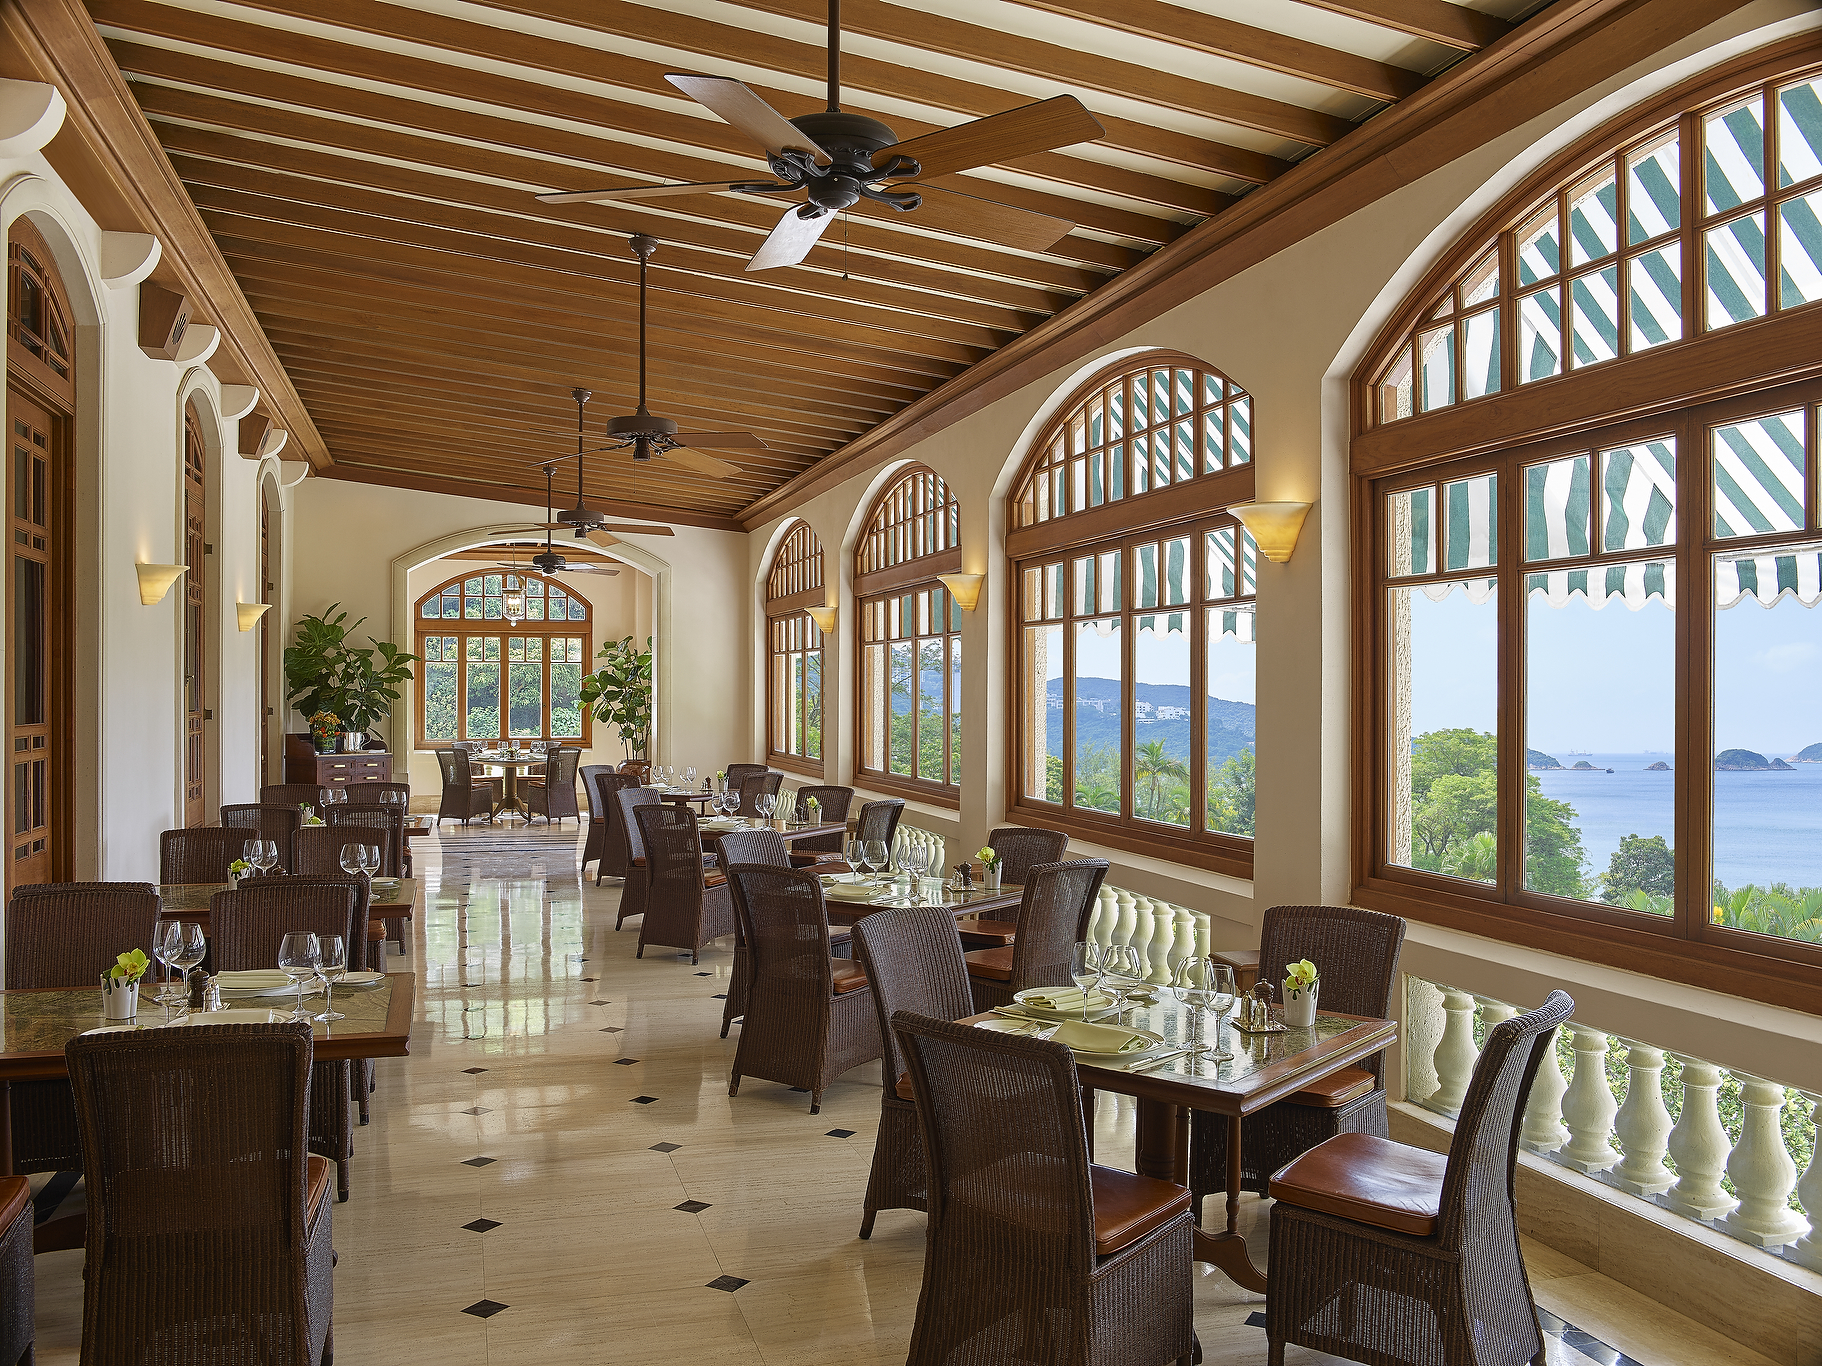 To Celebrate Summer The Verandah And Spices At The